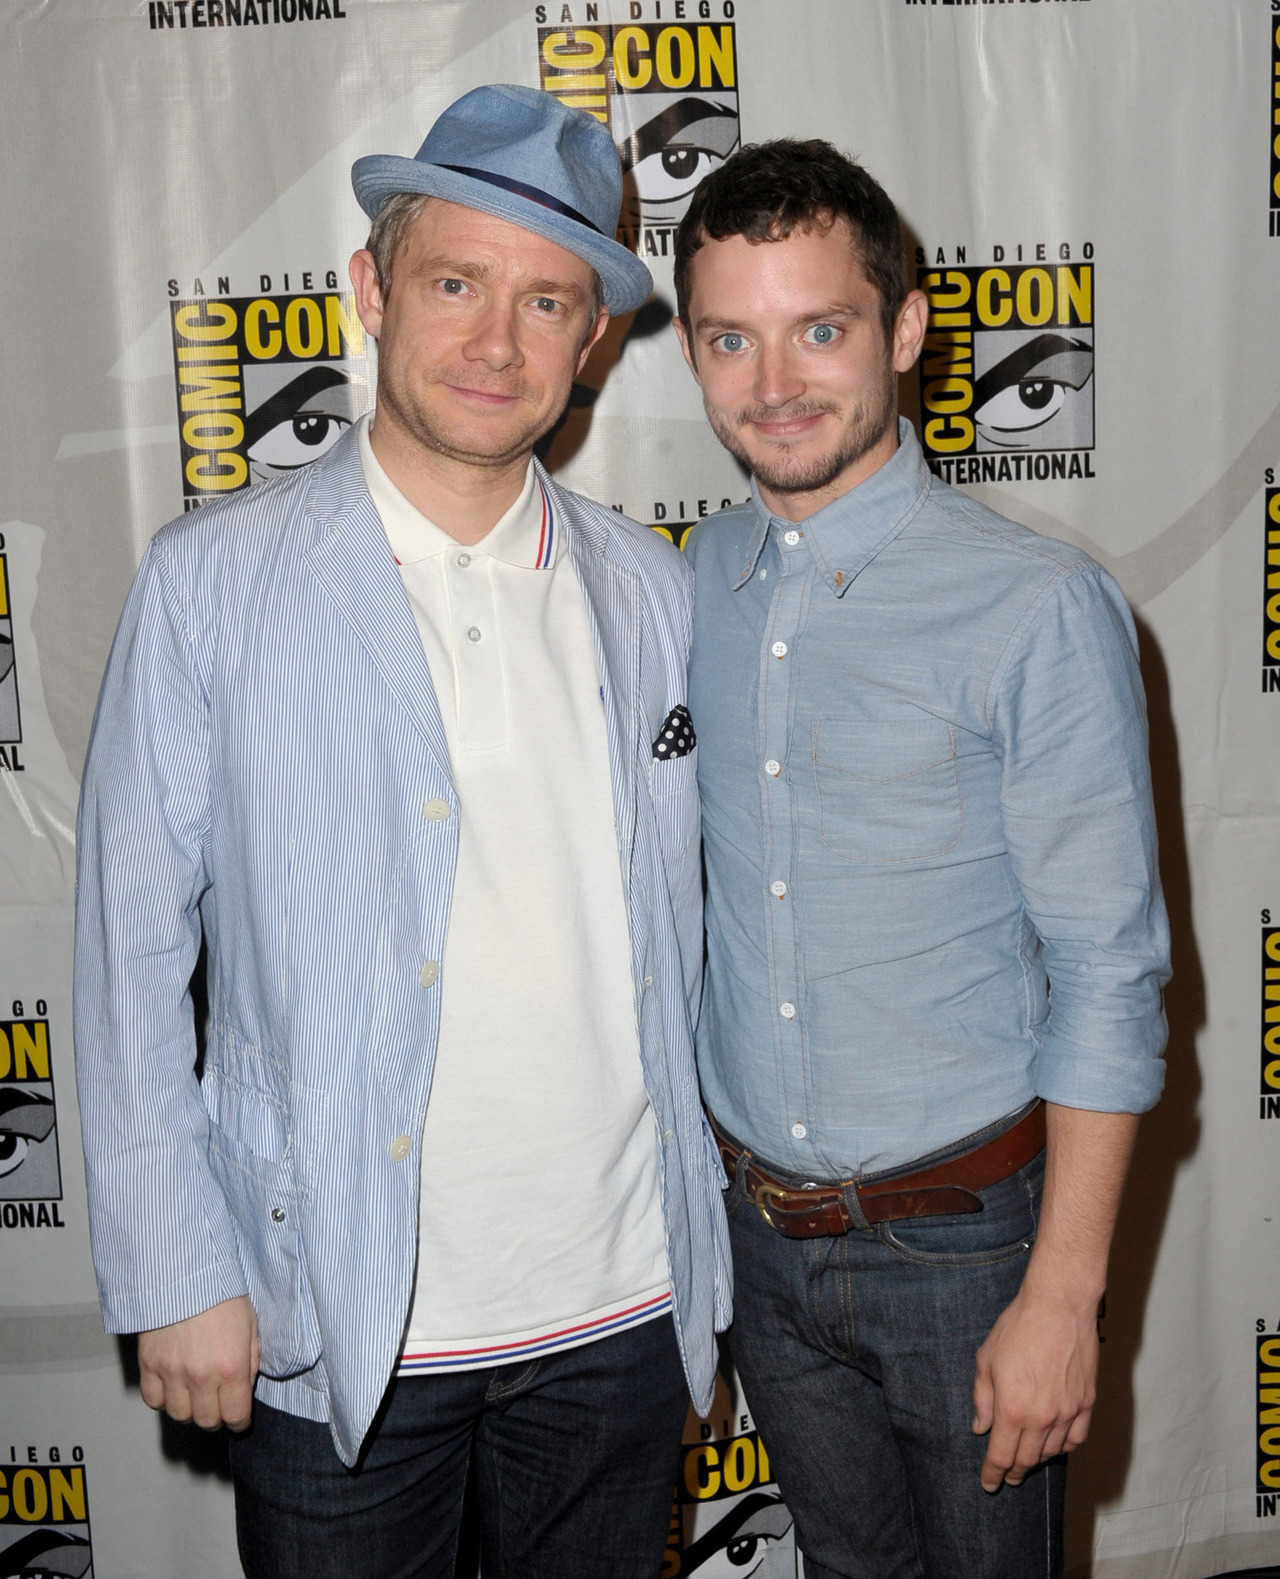 Martin Freeman & Elijah Wood - The Hobbit Comic-Con panel, July 14th 2012 BAGGINSES! Read this description of The Hobbit footage at Comic-Con as told by TheOneRing.net. It'll make your feels suffer!